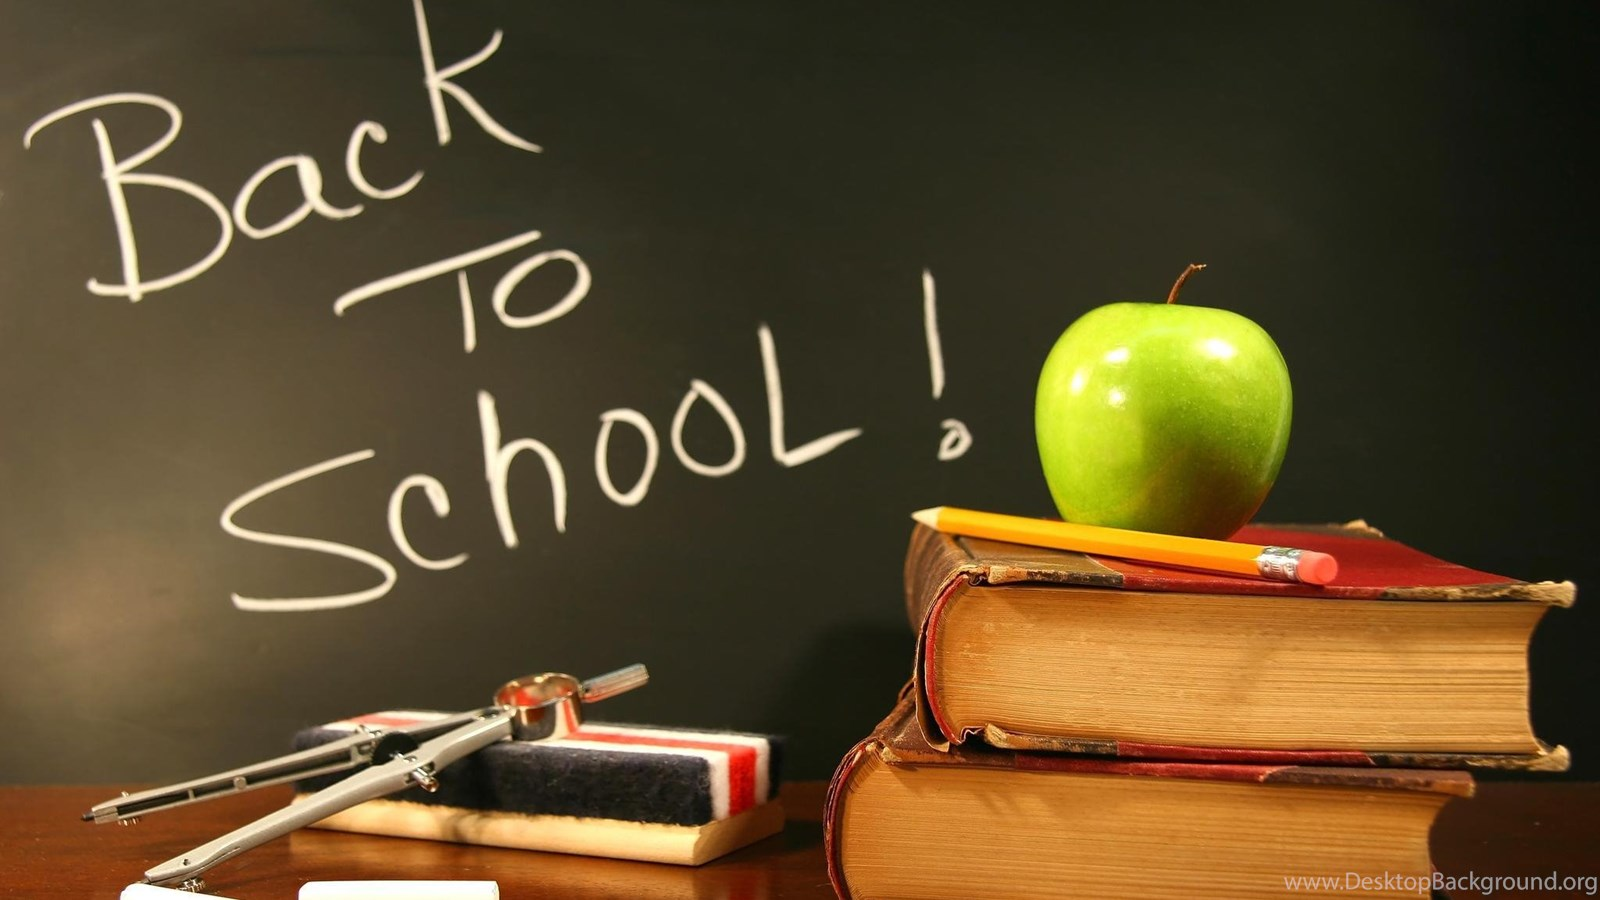 Back To School HD Wallpapers Pictures Images Photos Desktop 1600x900